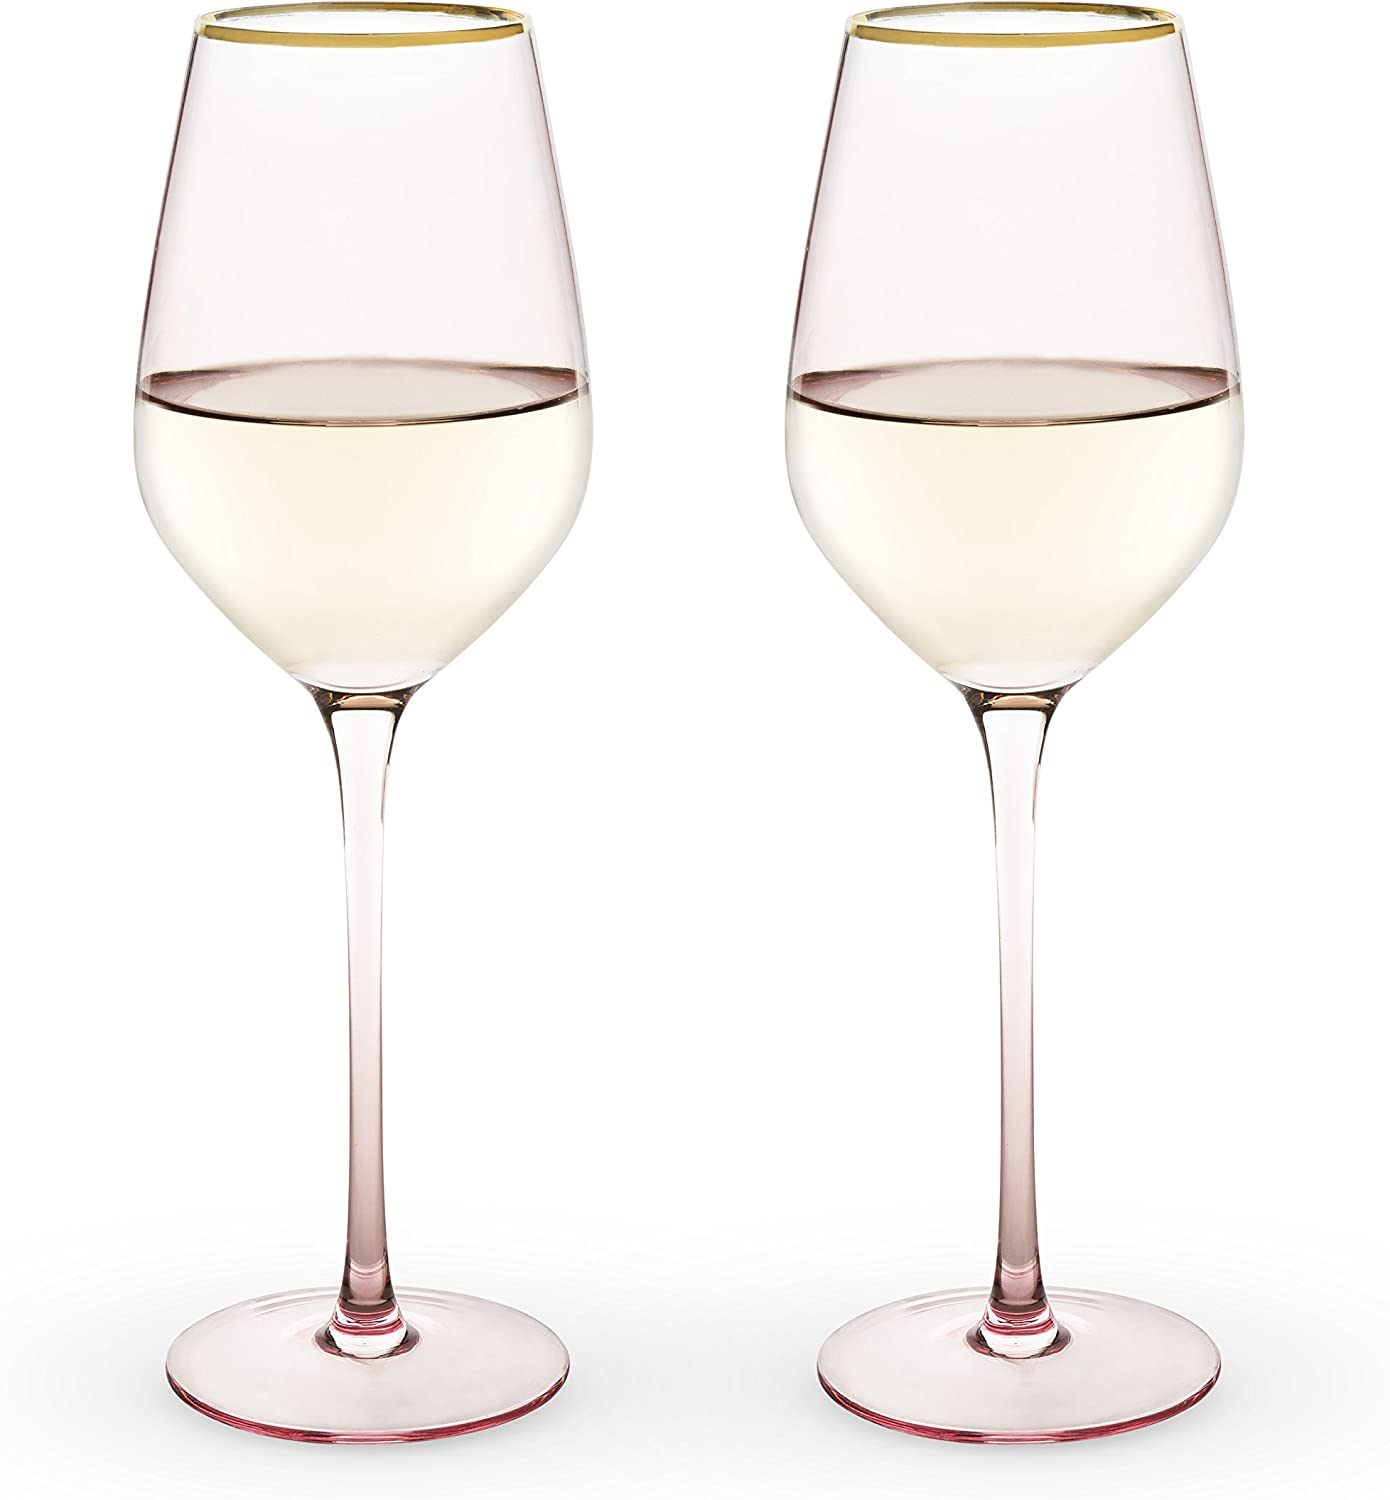 True Fabrication 6163 Garden Party Rose Crystal White Wine Glass Set by Twine, Multicolor